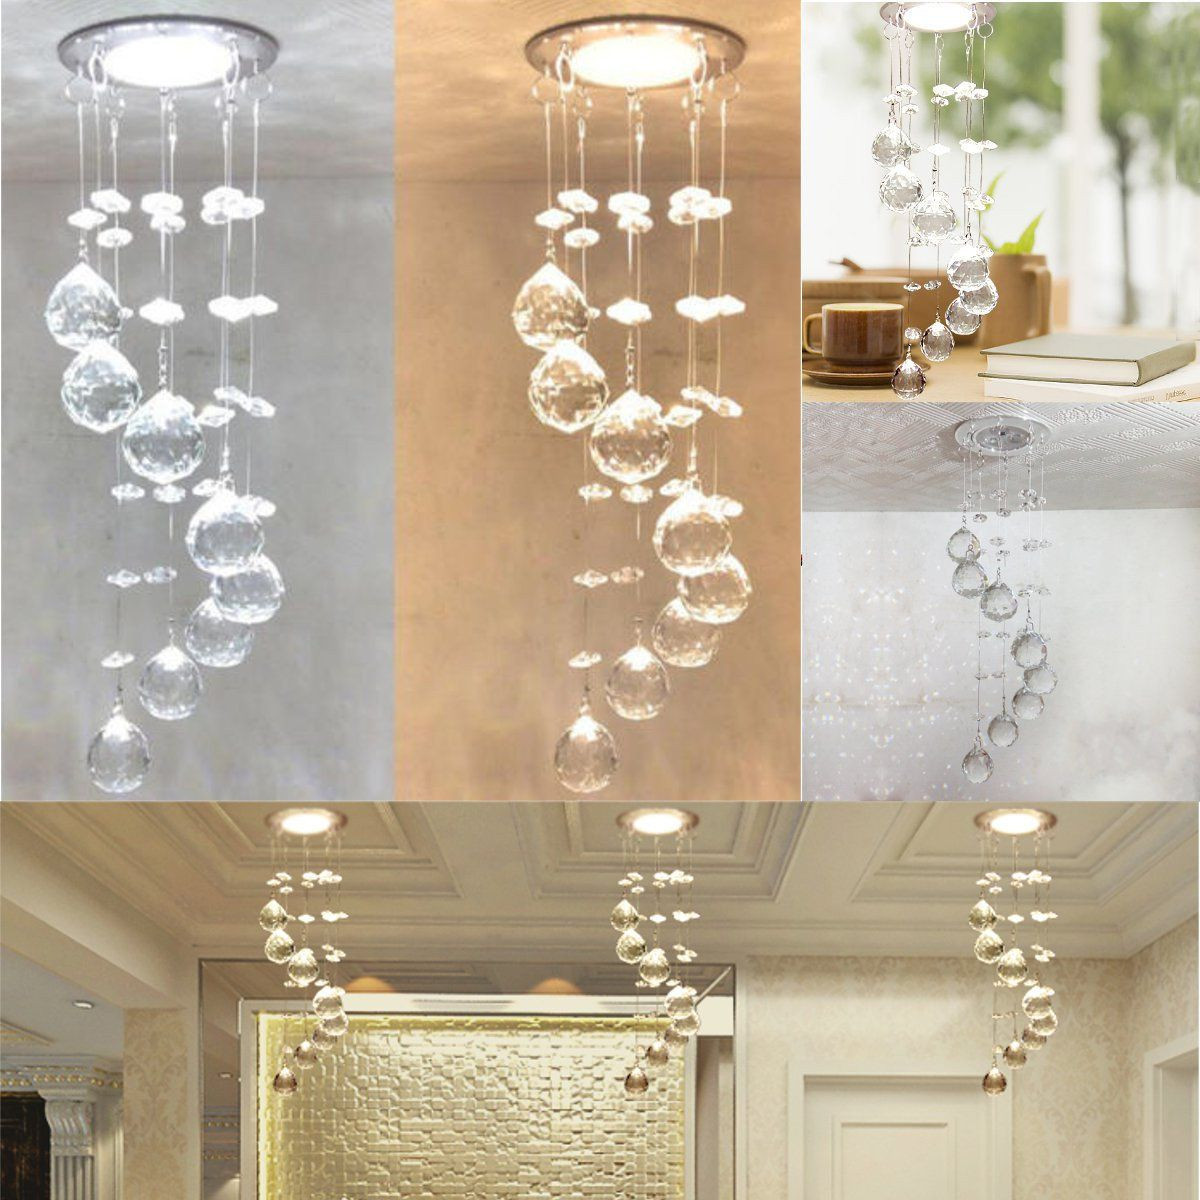 3w Led Crystal Concealed Ceiling Light Small Chandelier Lamp Pendant Hallway Small Chandelier Ceiling Lights Crystal Ceiling Light